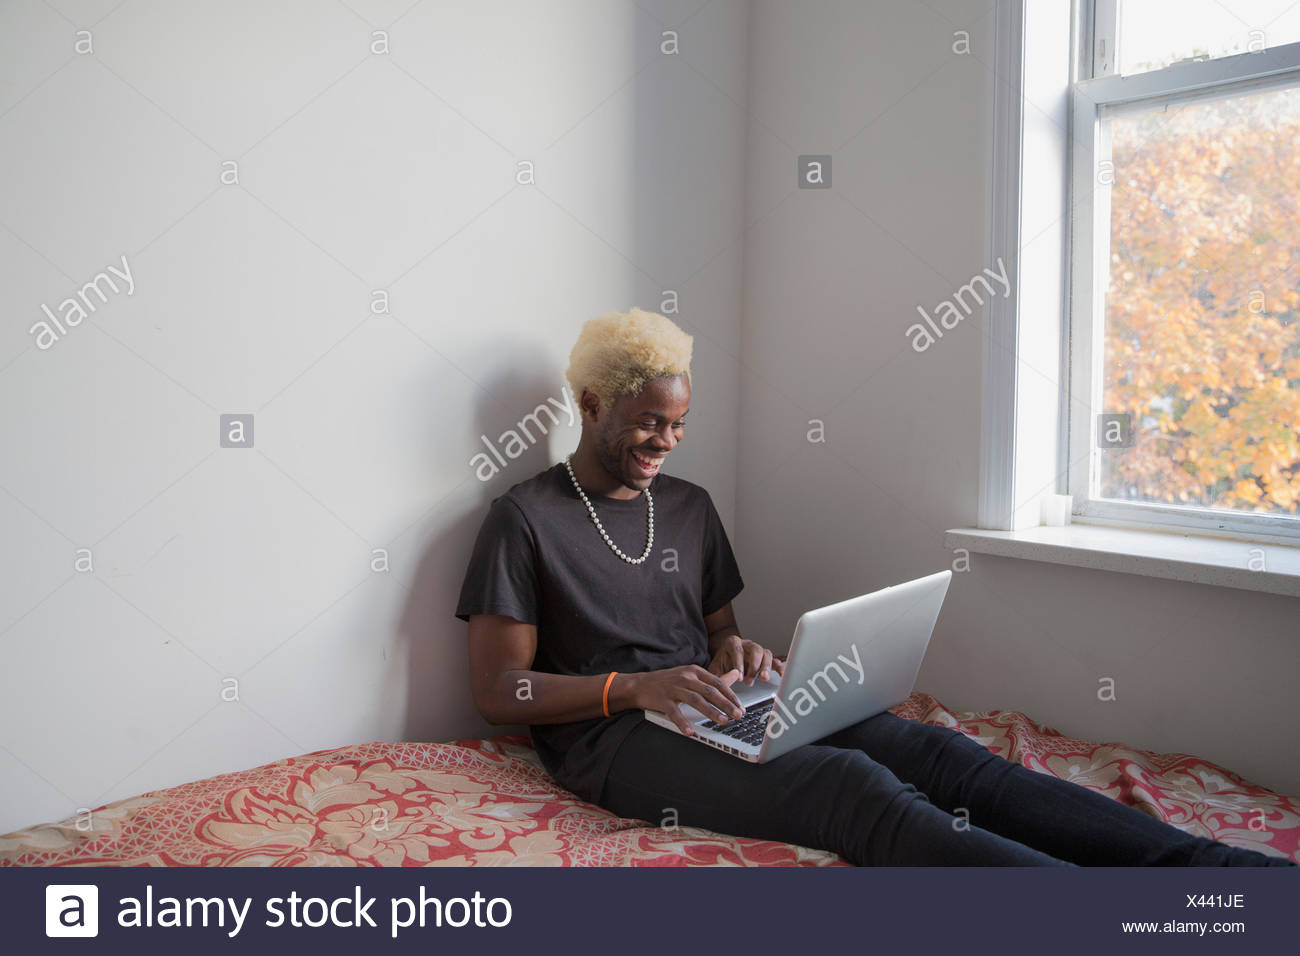 Young man smiling as he types on his laptop by a window at home - Stock Image